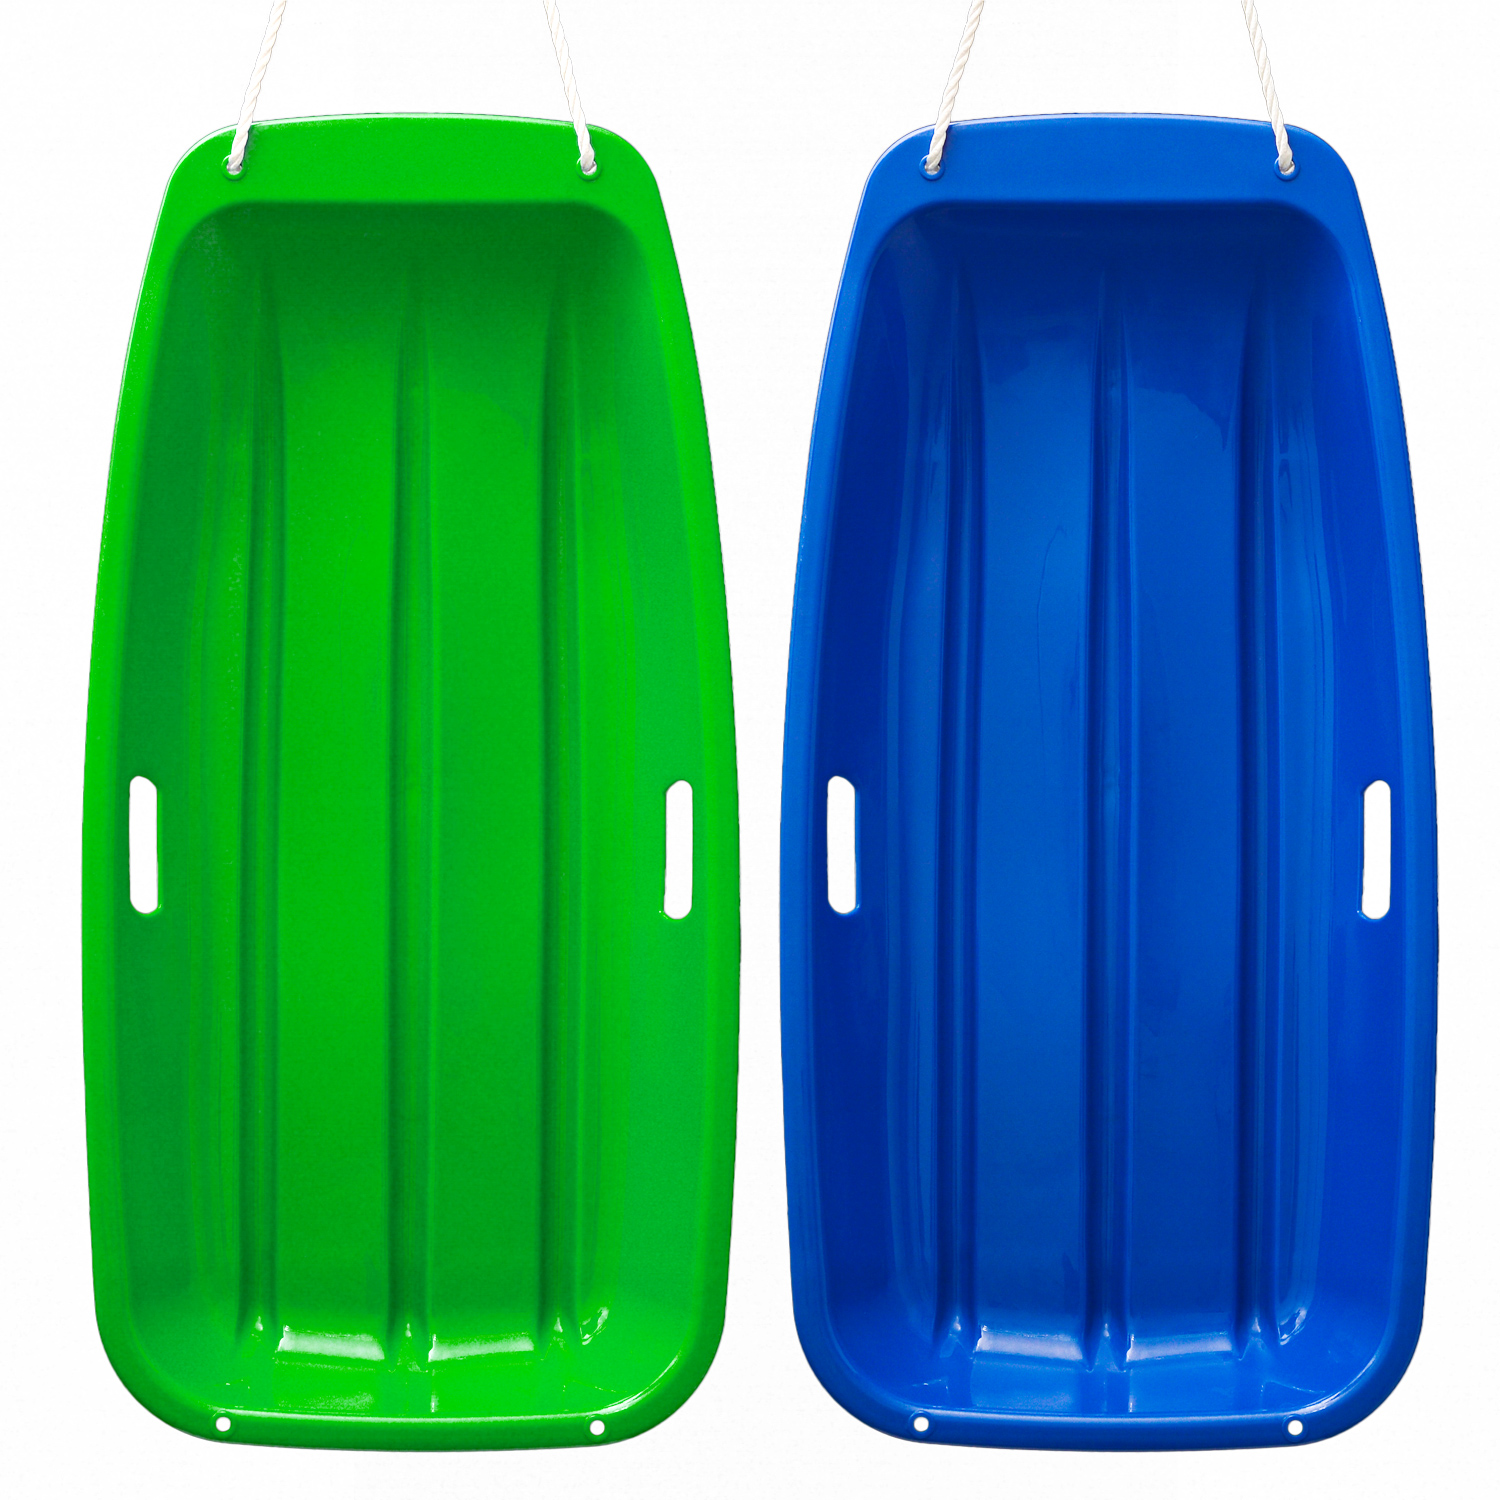 IMagE 35*17*4.3inches Kids Snow Sled Plastic Toboggan Boat Sledge Snowboard by